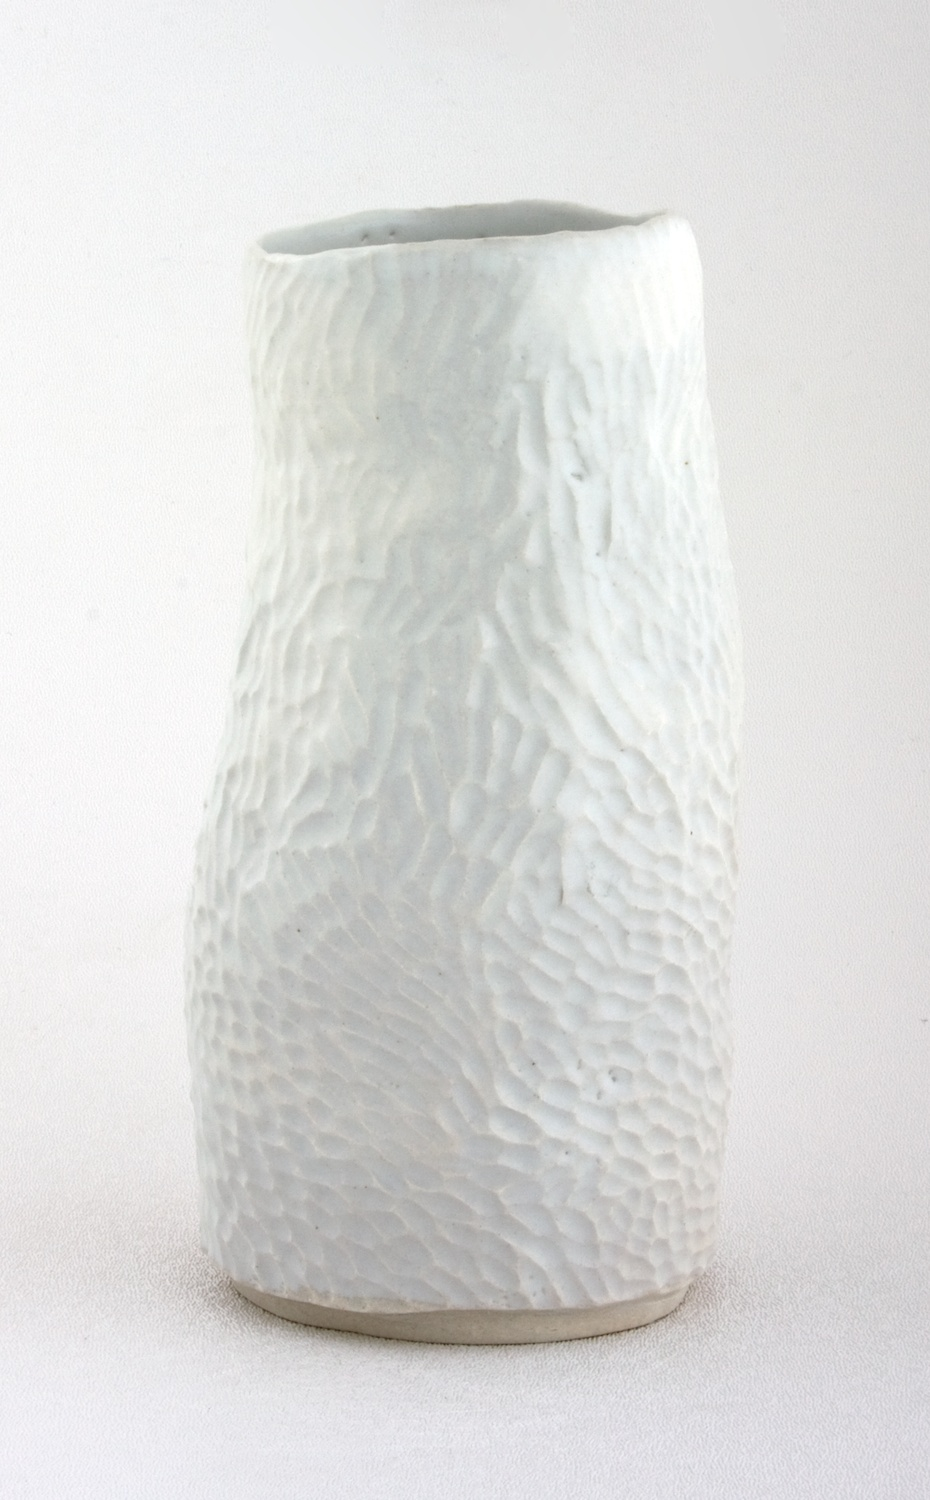 "Shio Kusaka Untitled (log) 2009 Porcelain 7"" x 4"" x 4"" SK002"